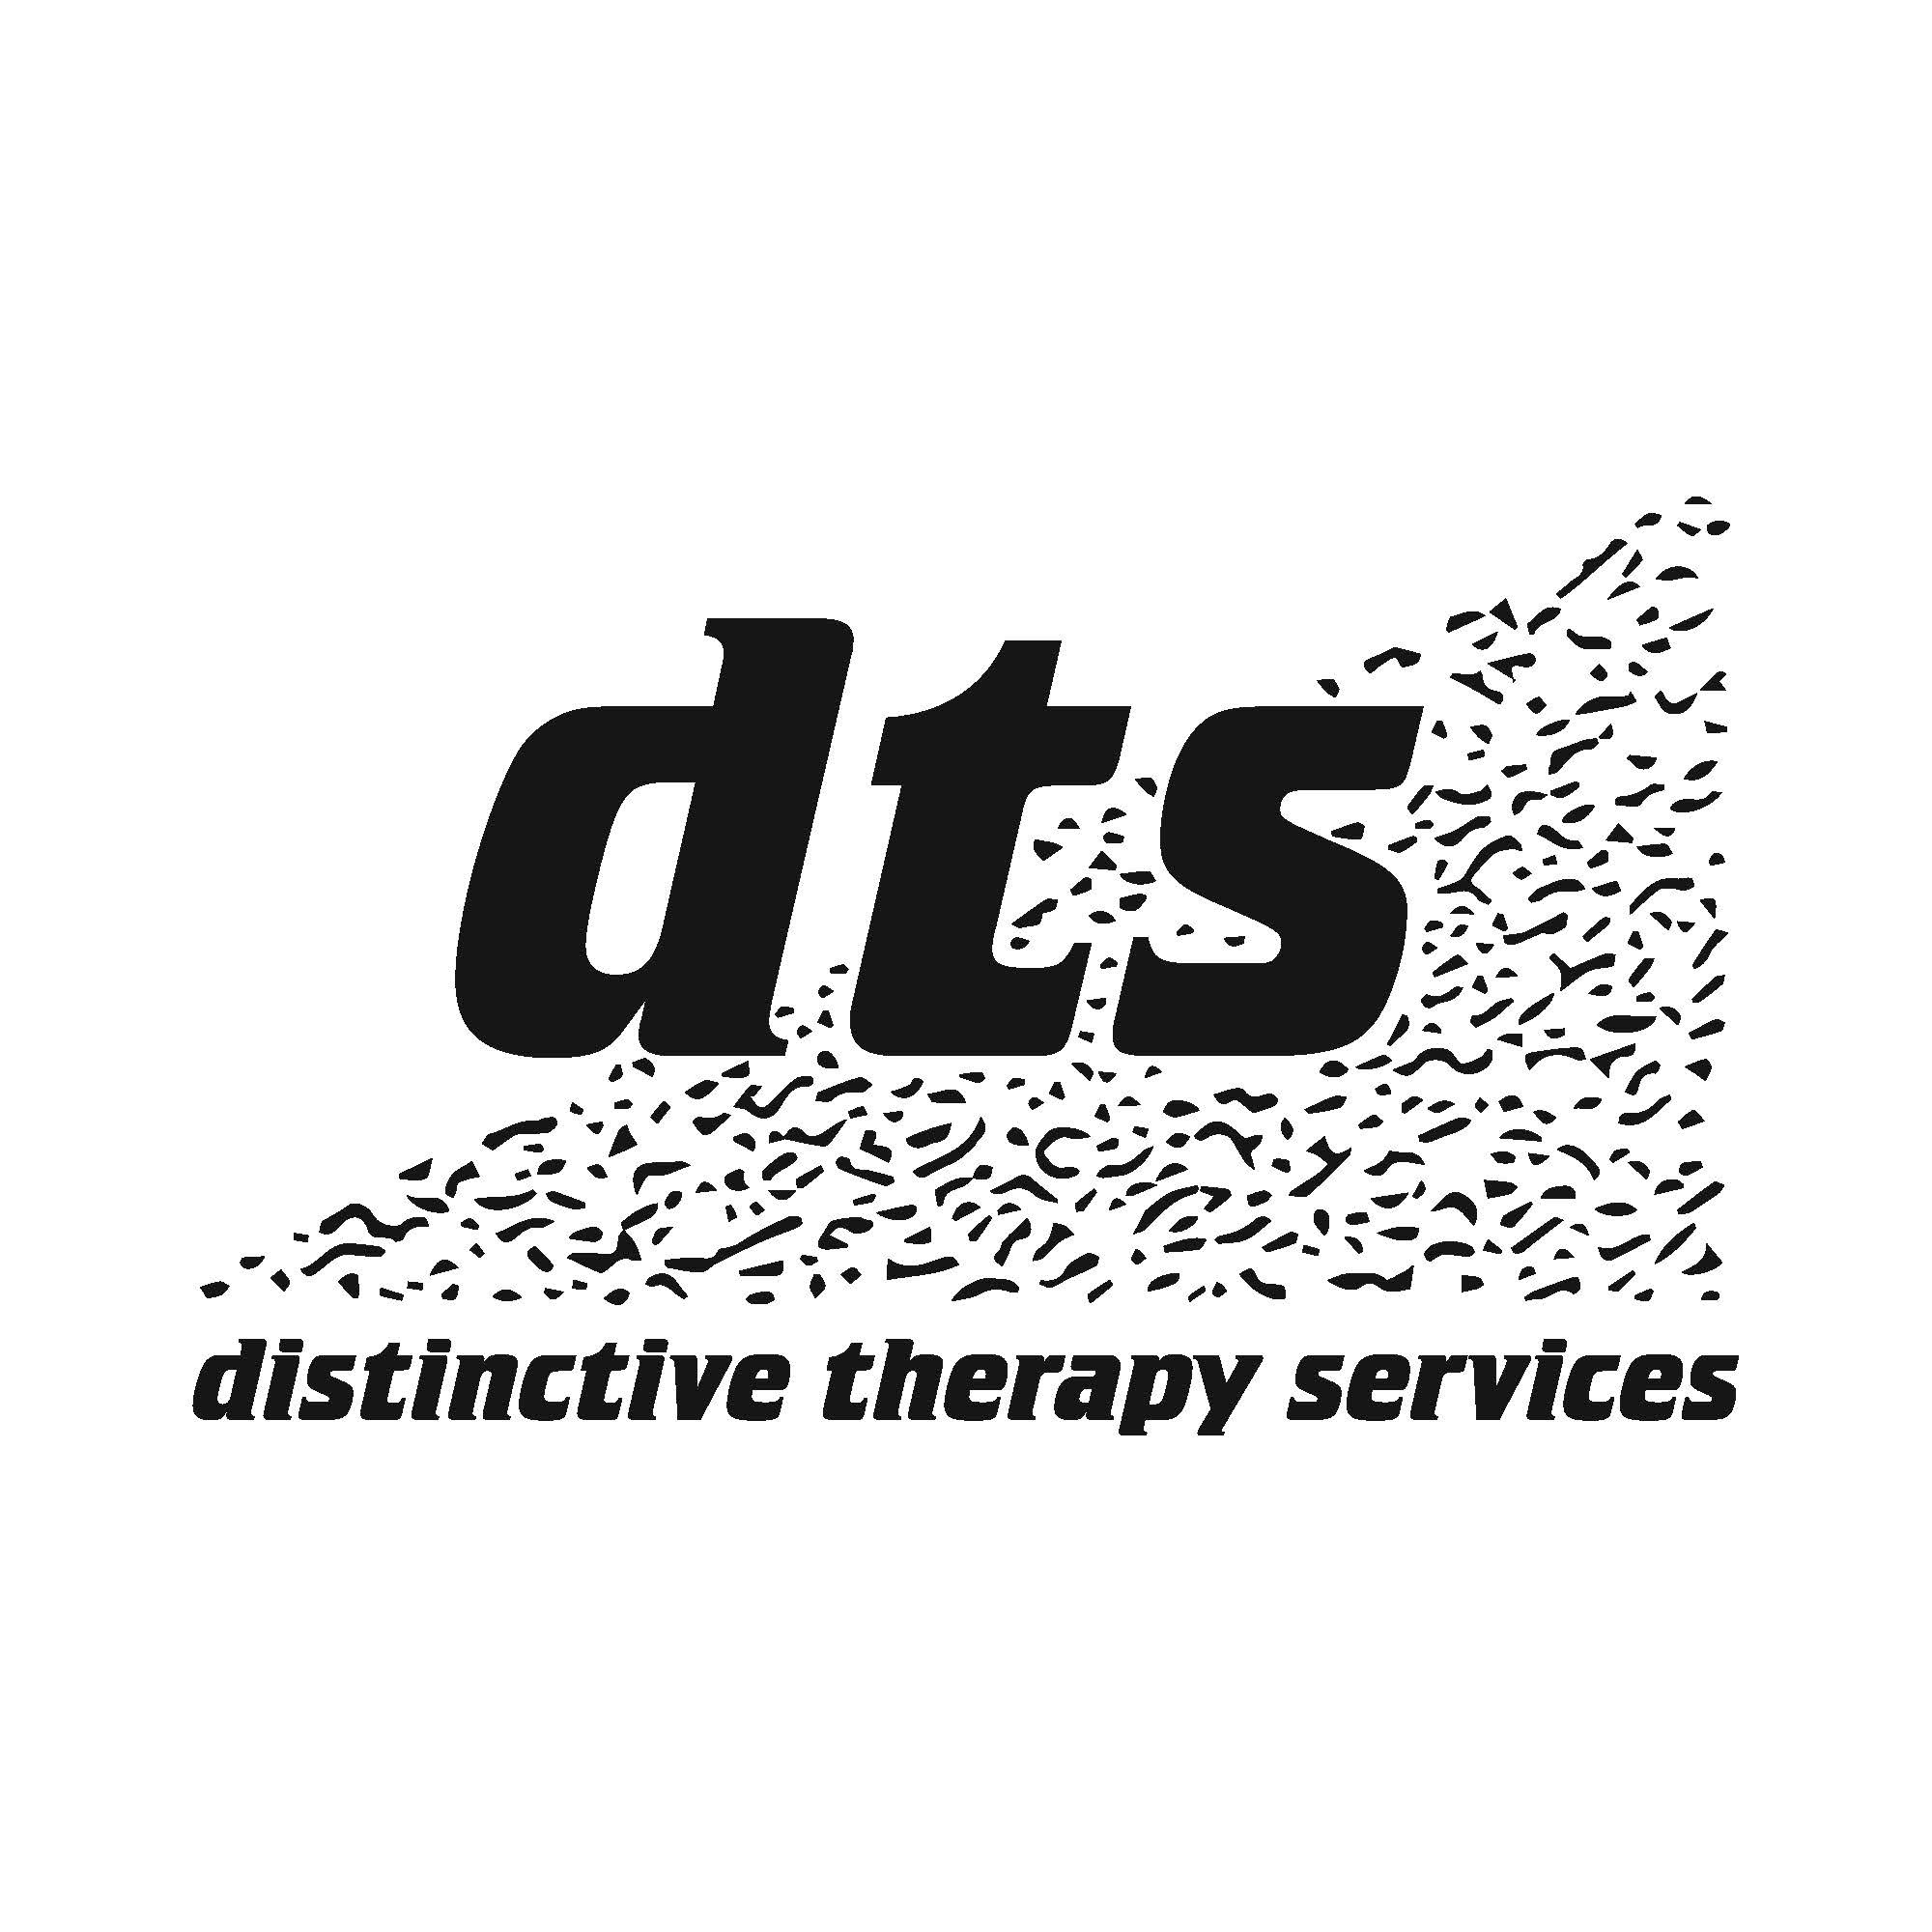 Distinctive Therapy Services